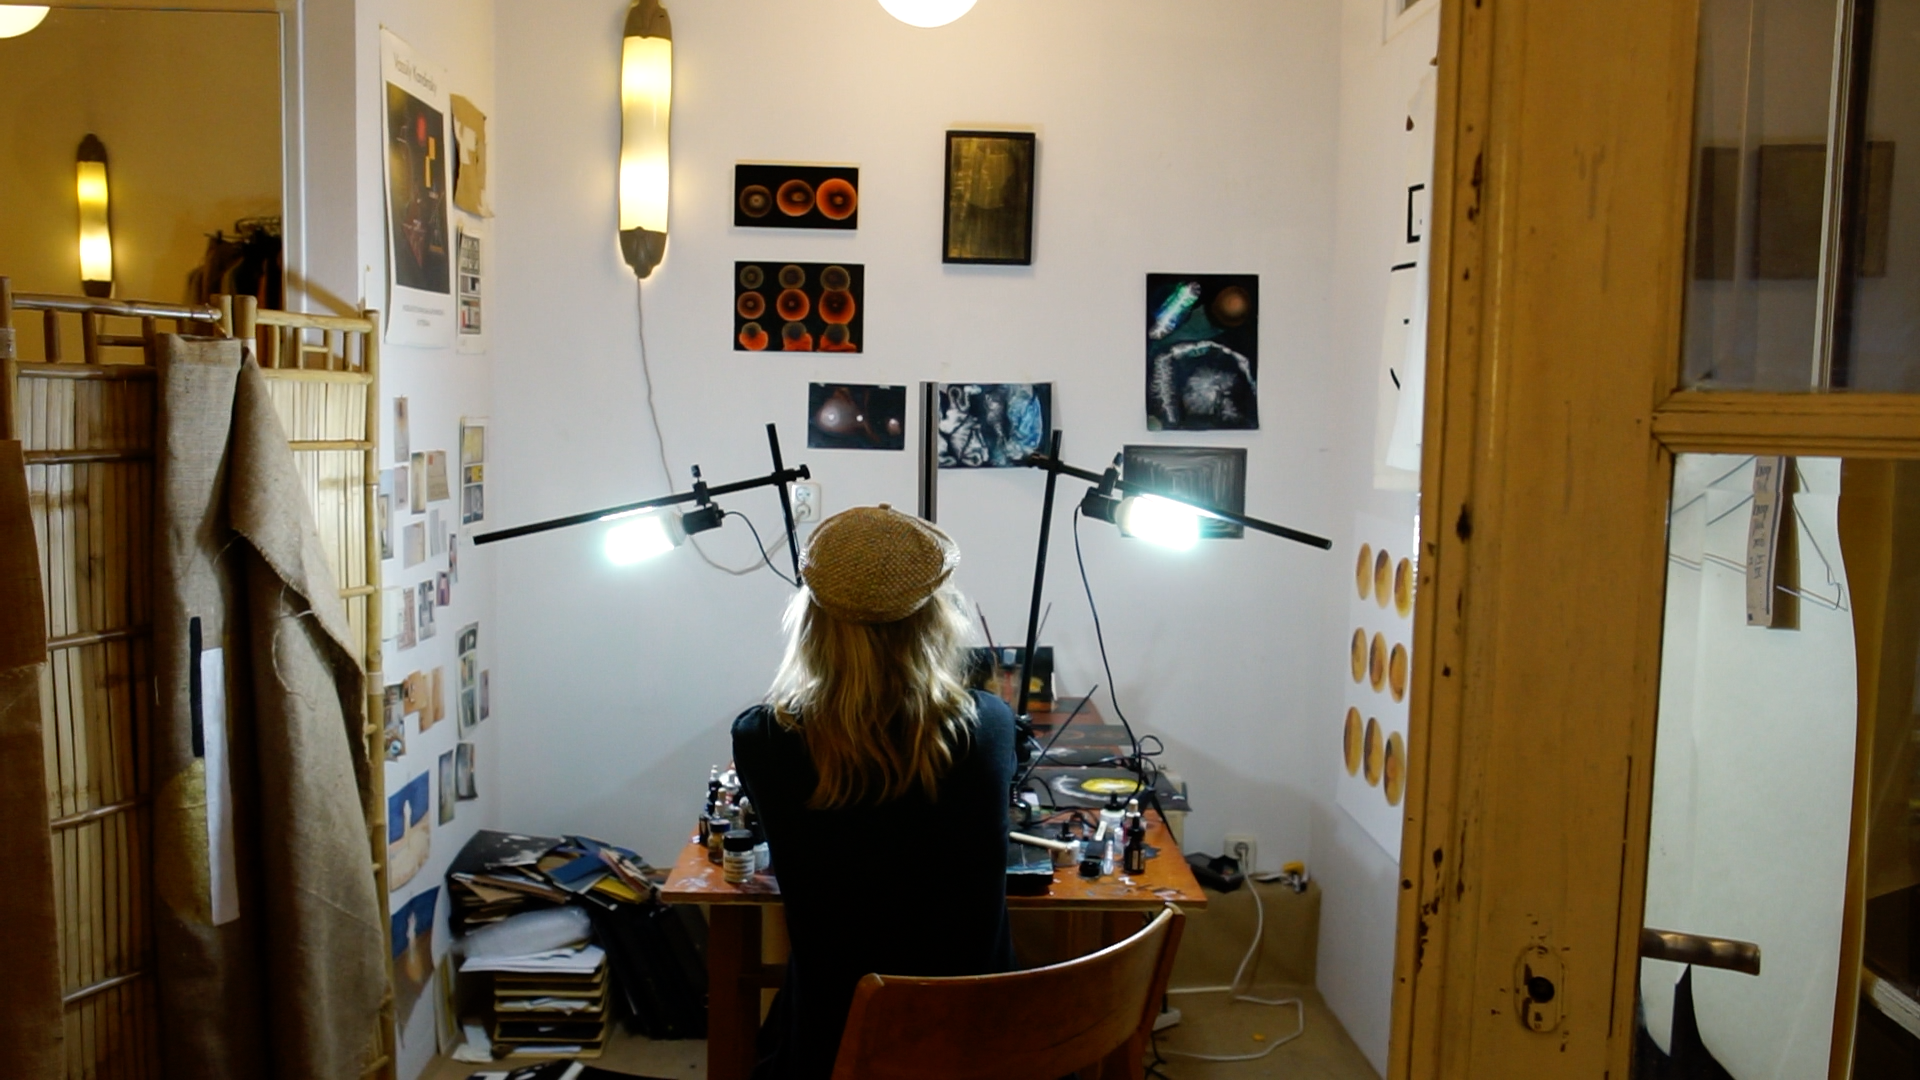 Patricia Hofstede in her studio, working on the Lyric Video for 'If I Say' by Mumford & Sons.